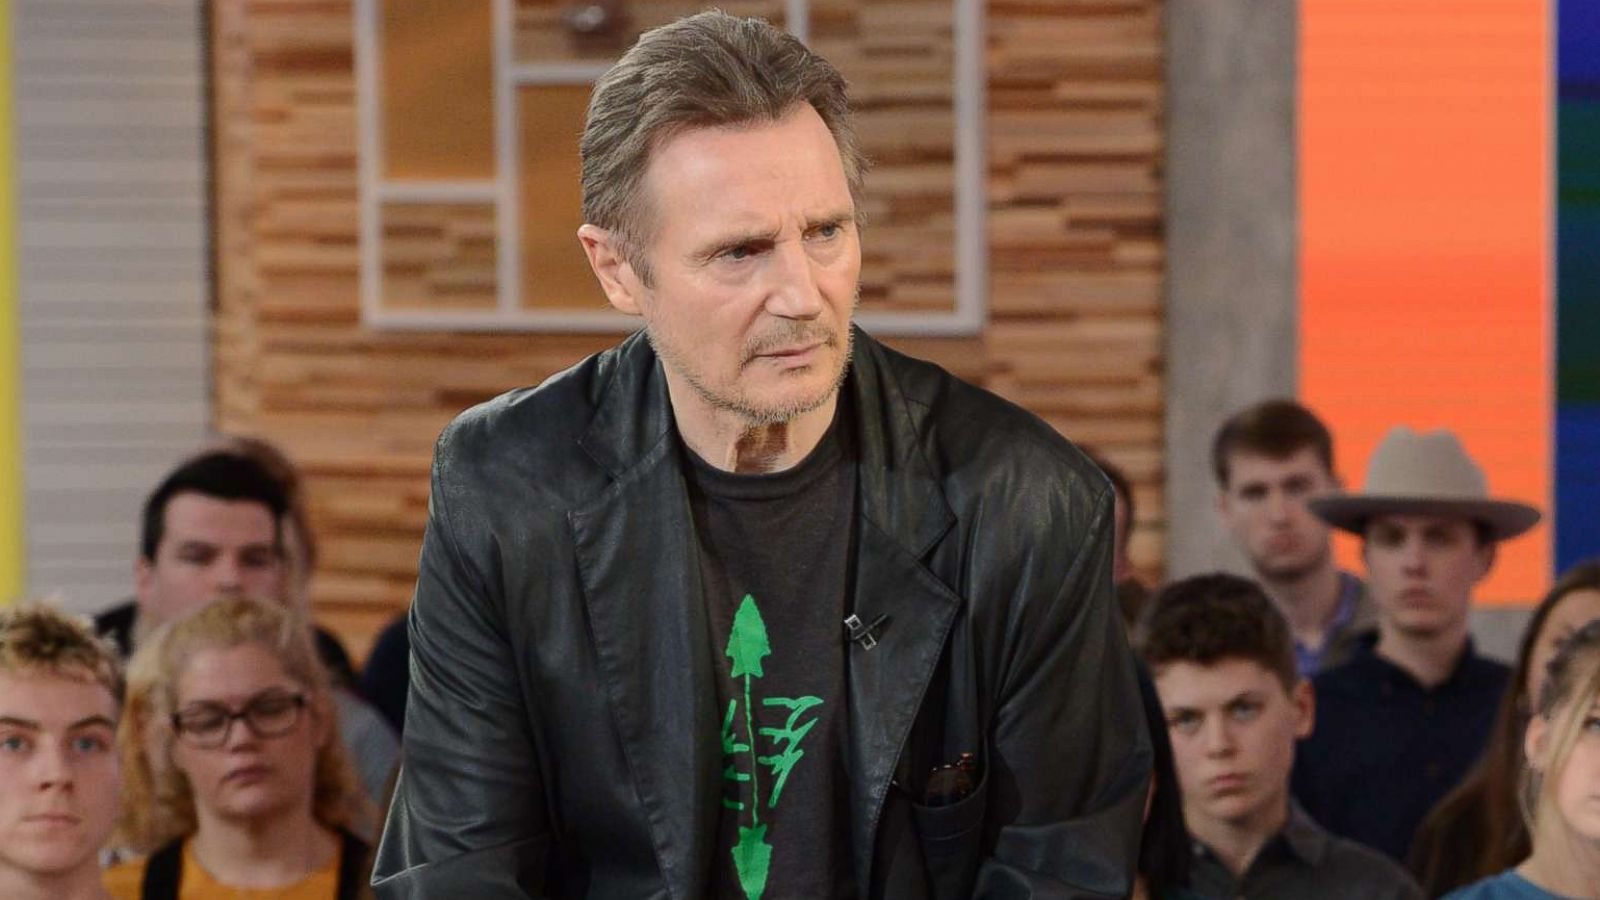 Liam Neeson clarifies previous remarks in 'GMA' interview